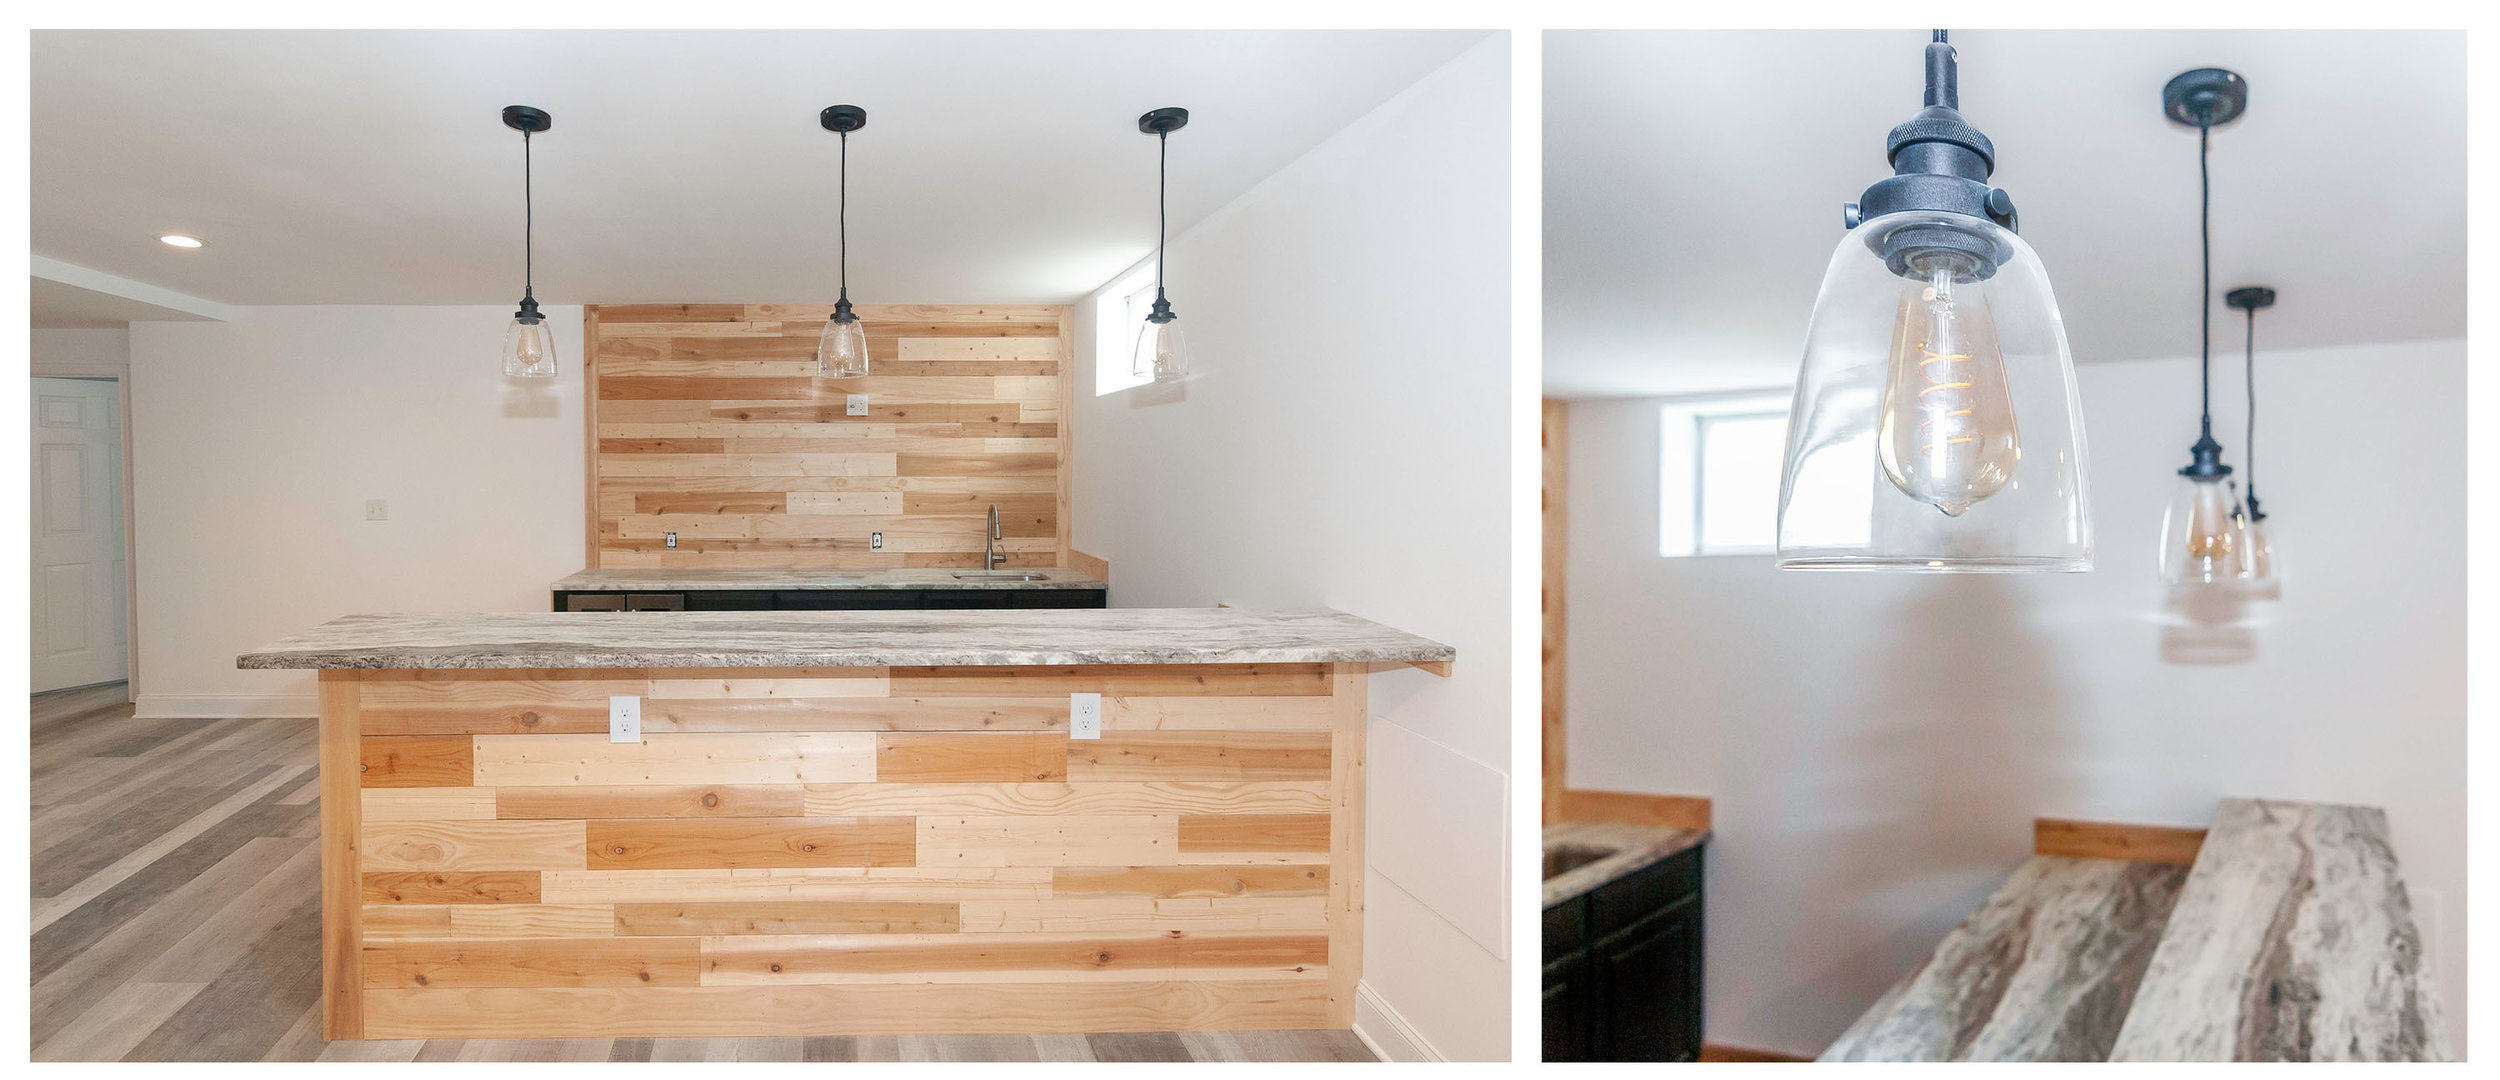 6 Harness Basement Bar Comparison 2.jpg